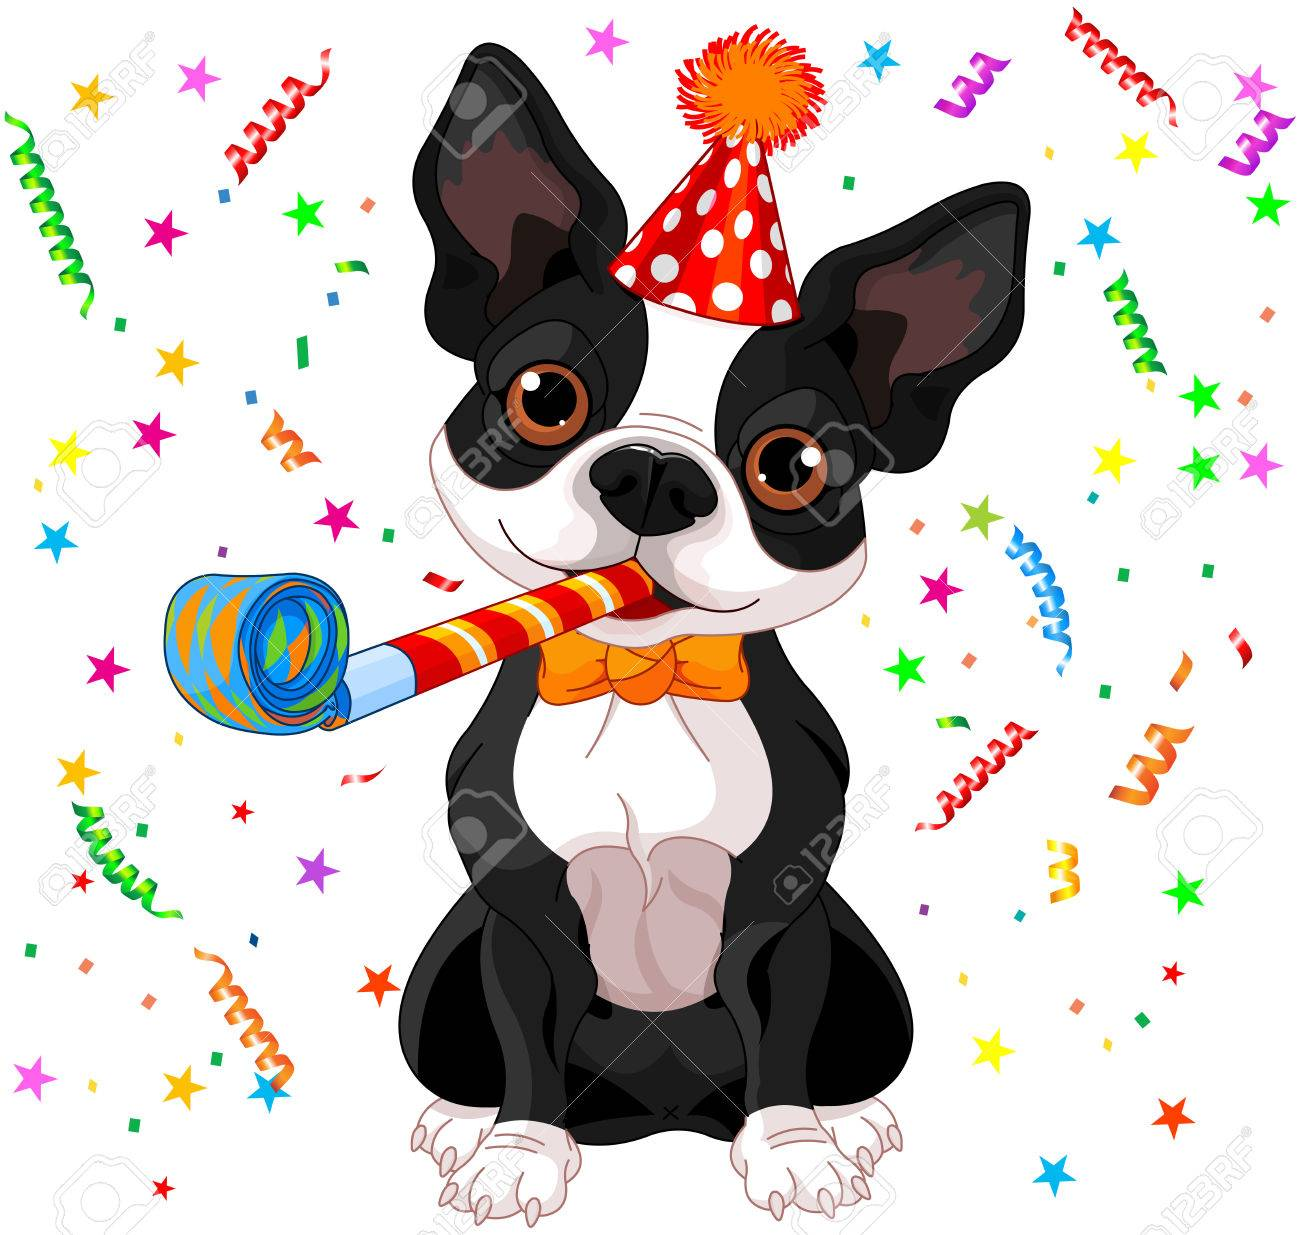 Respect des codes canins/signaux d'apaisement - Page 5 35588778-illustration-of-cute-boston-terrier-celebrating